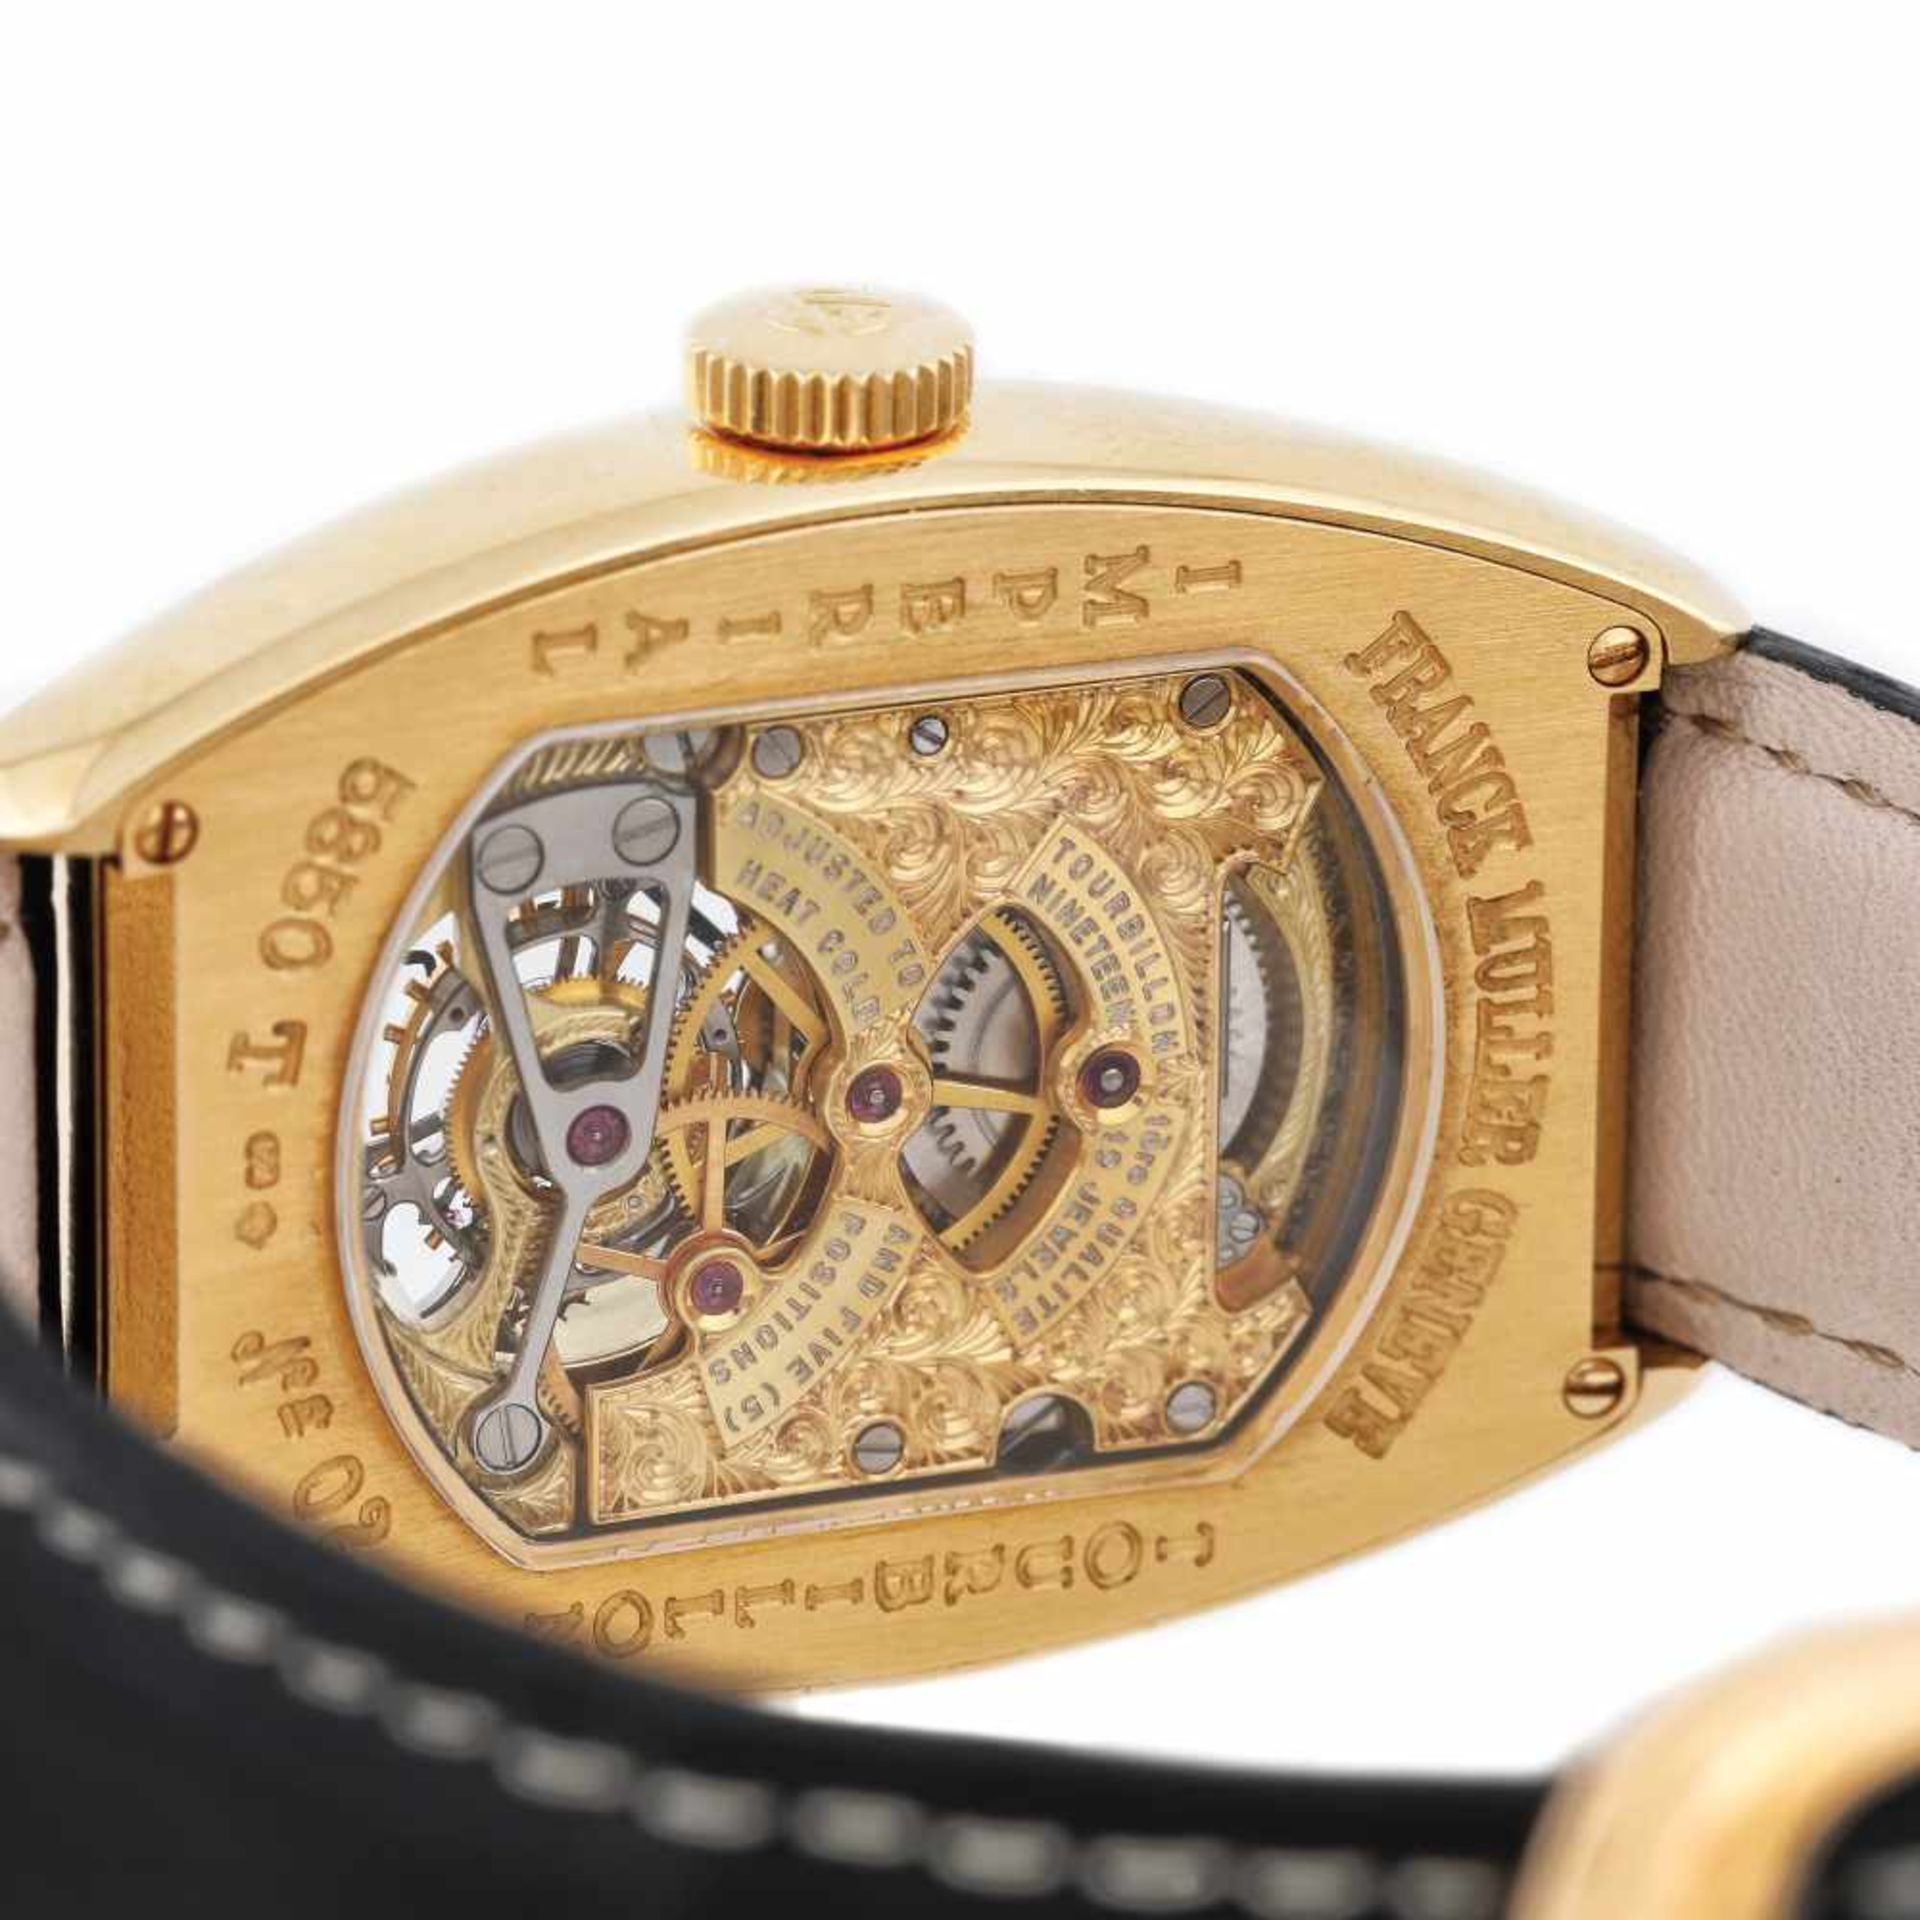 Franck Muller Tourbillion wristwatch, gold, men - Bild 4 aus 4